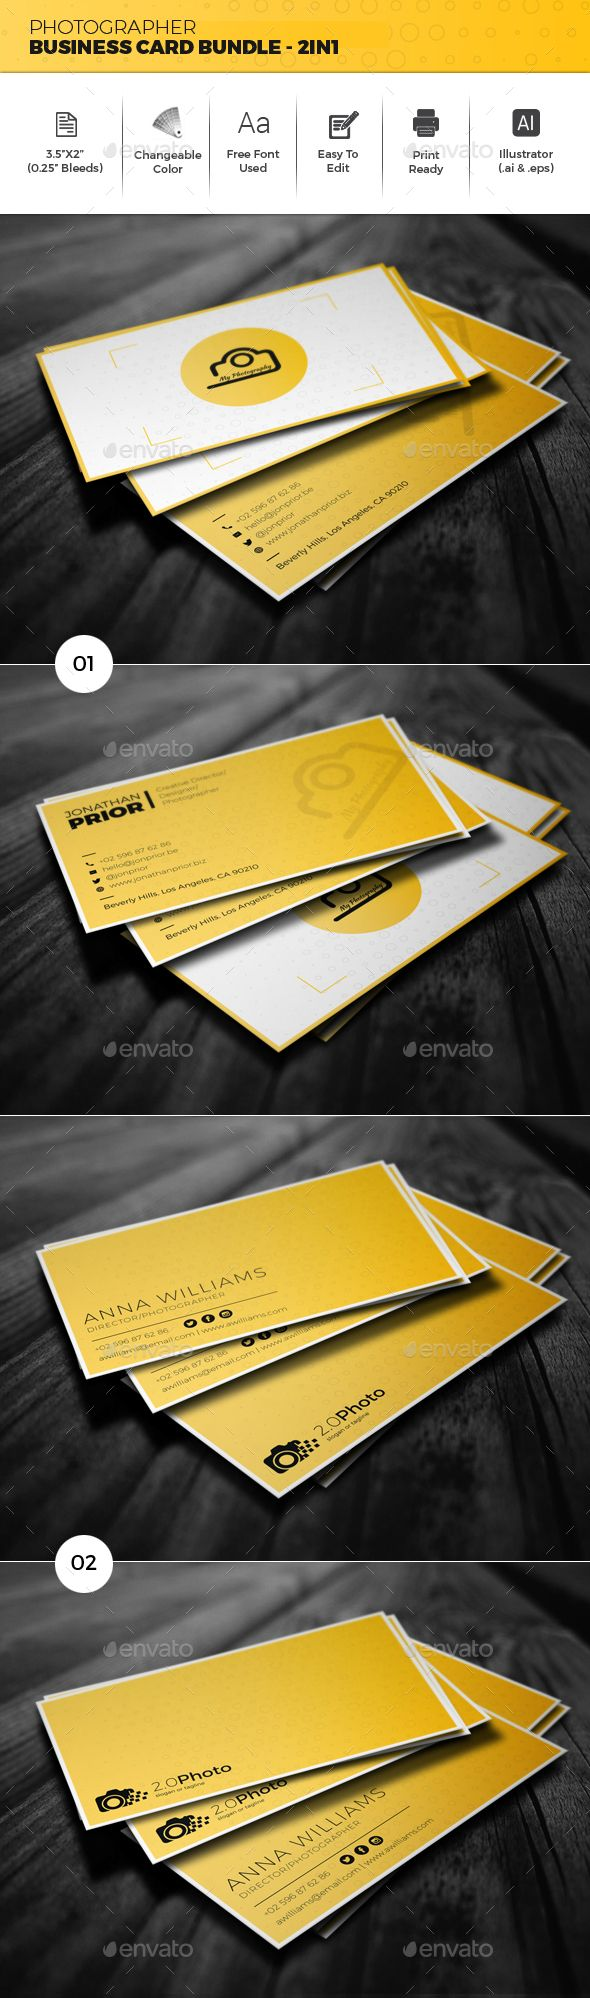 Best 25 photographer business cards ideas on pinterest photographer business card bundle 2in1 magicingreecefo Image collections